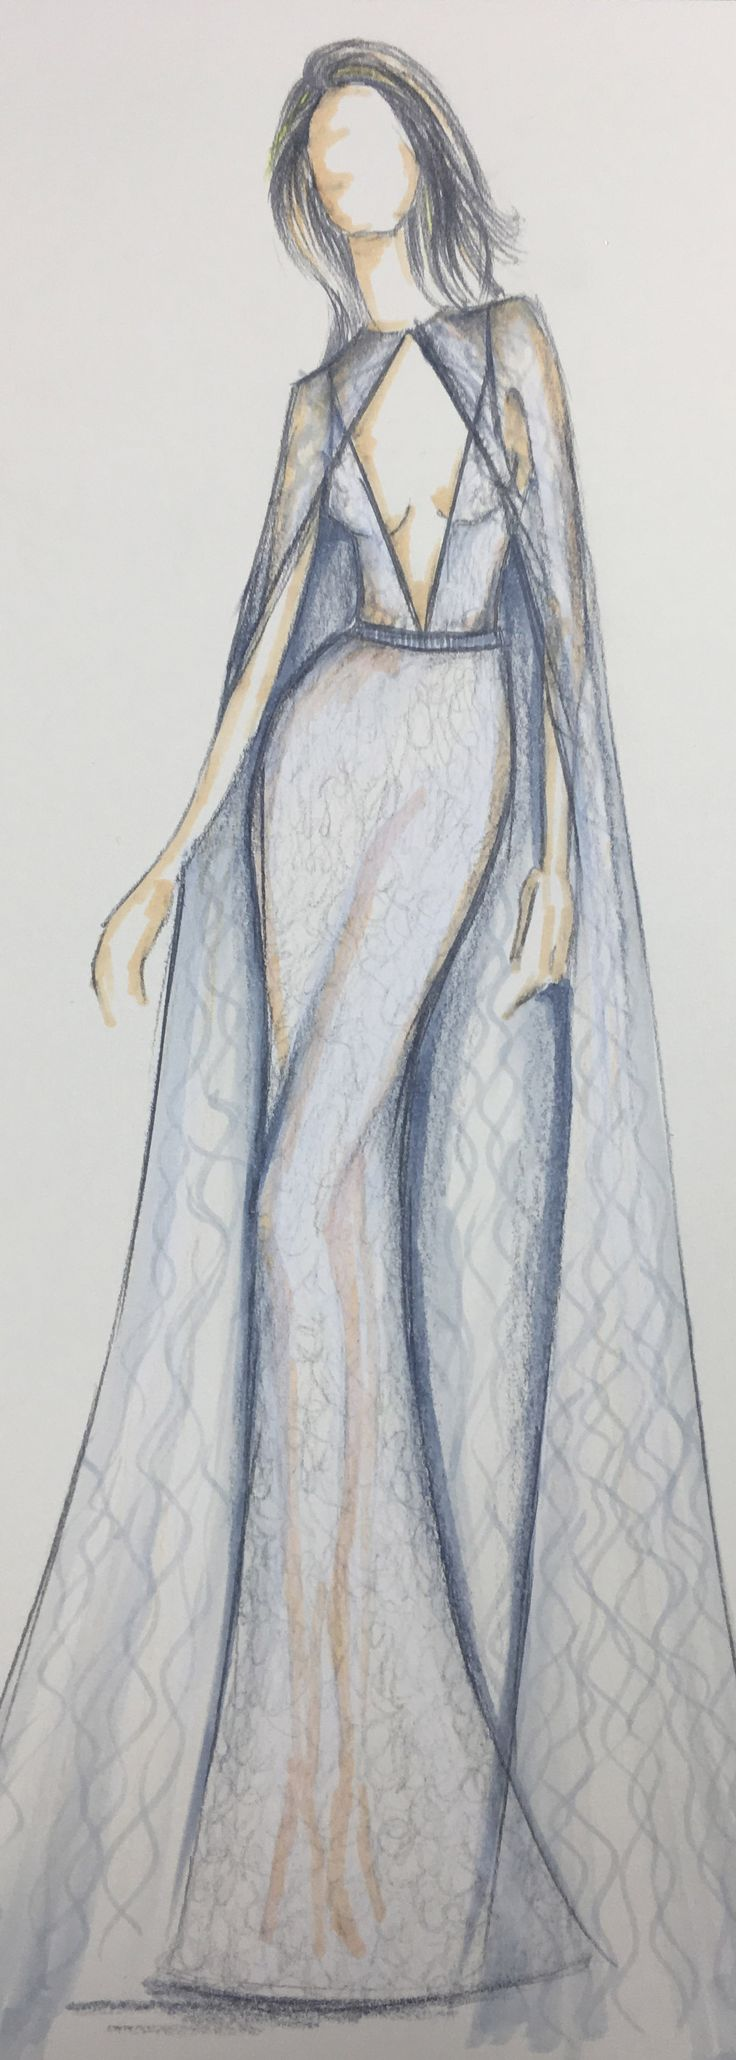 Fashion sketches new fashion sketches - Sketch Of A Masterpiece Berta Style 17 130 From The New 2017 Collection Dress Sketchesfashion